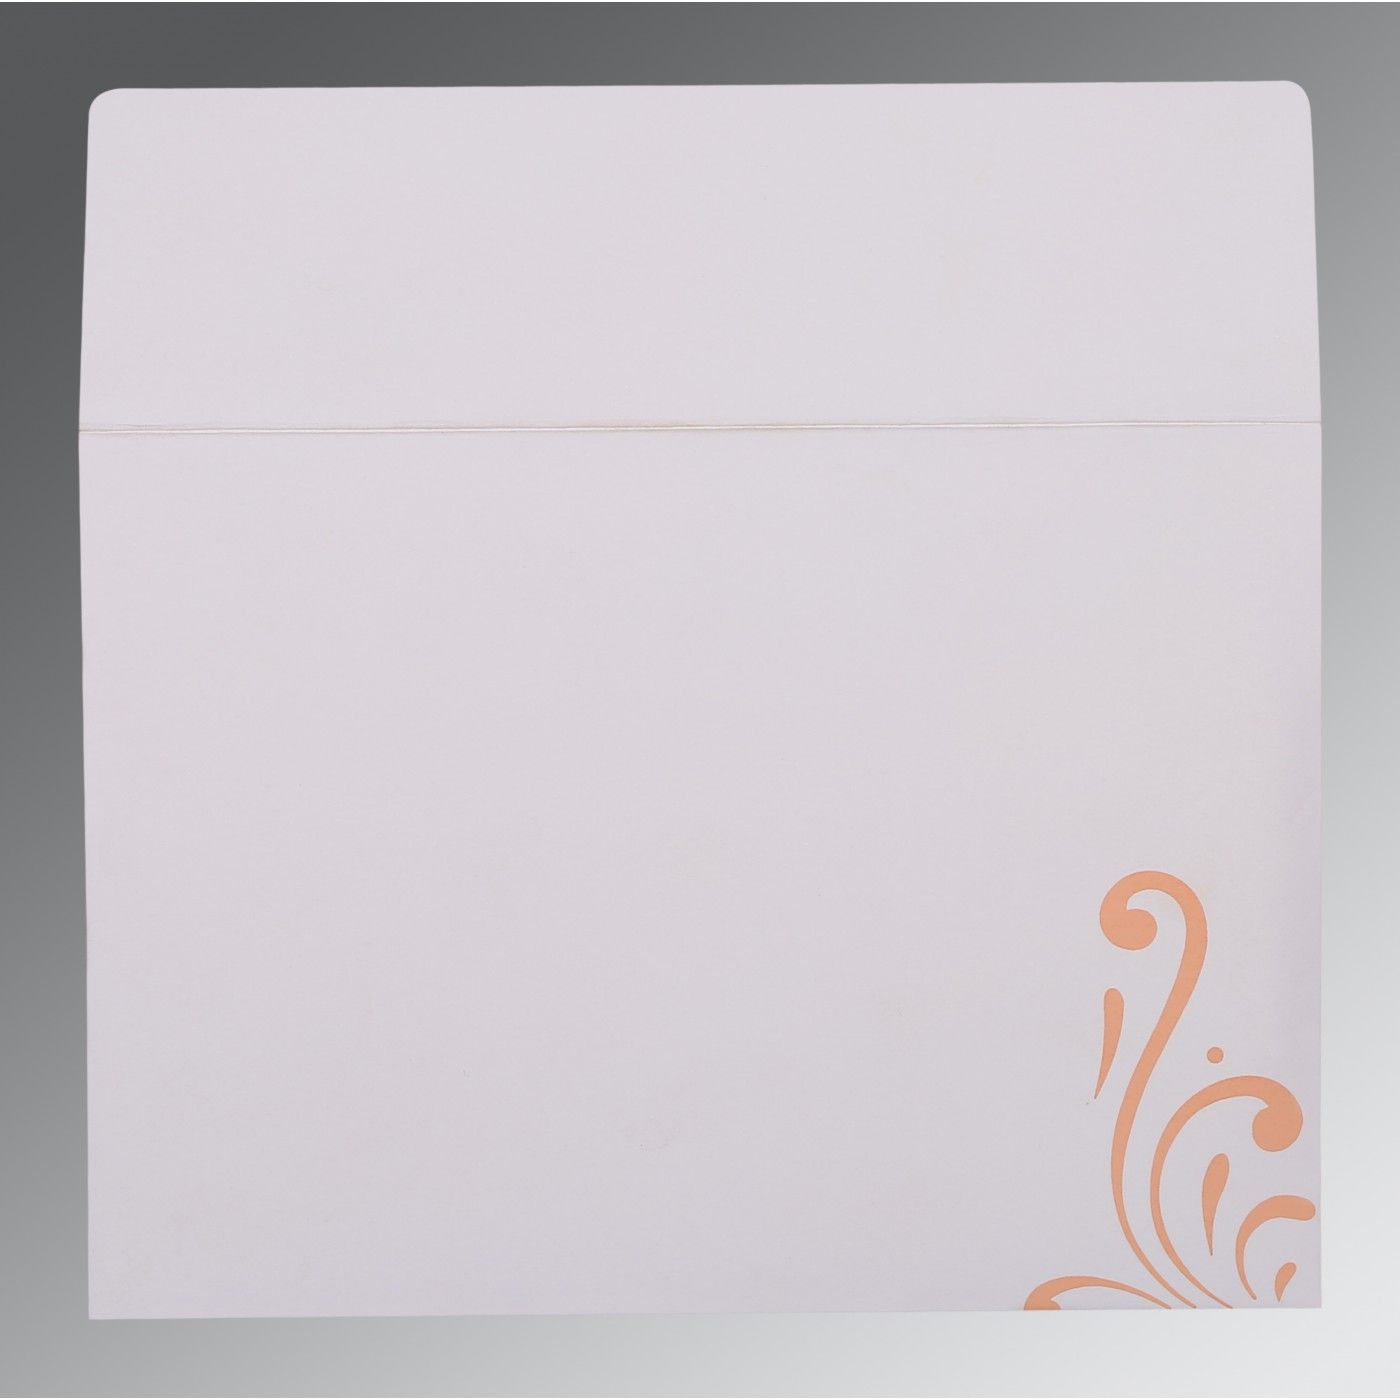 BABY PINK SHIMMERY SCREEN PRINTED WEDDING CARD : CW-8223E - IndianWeddingCards